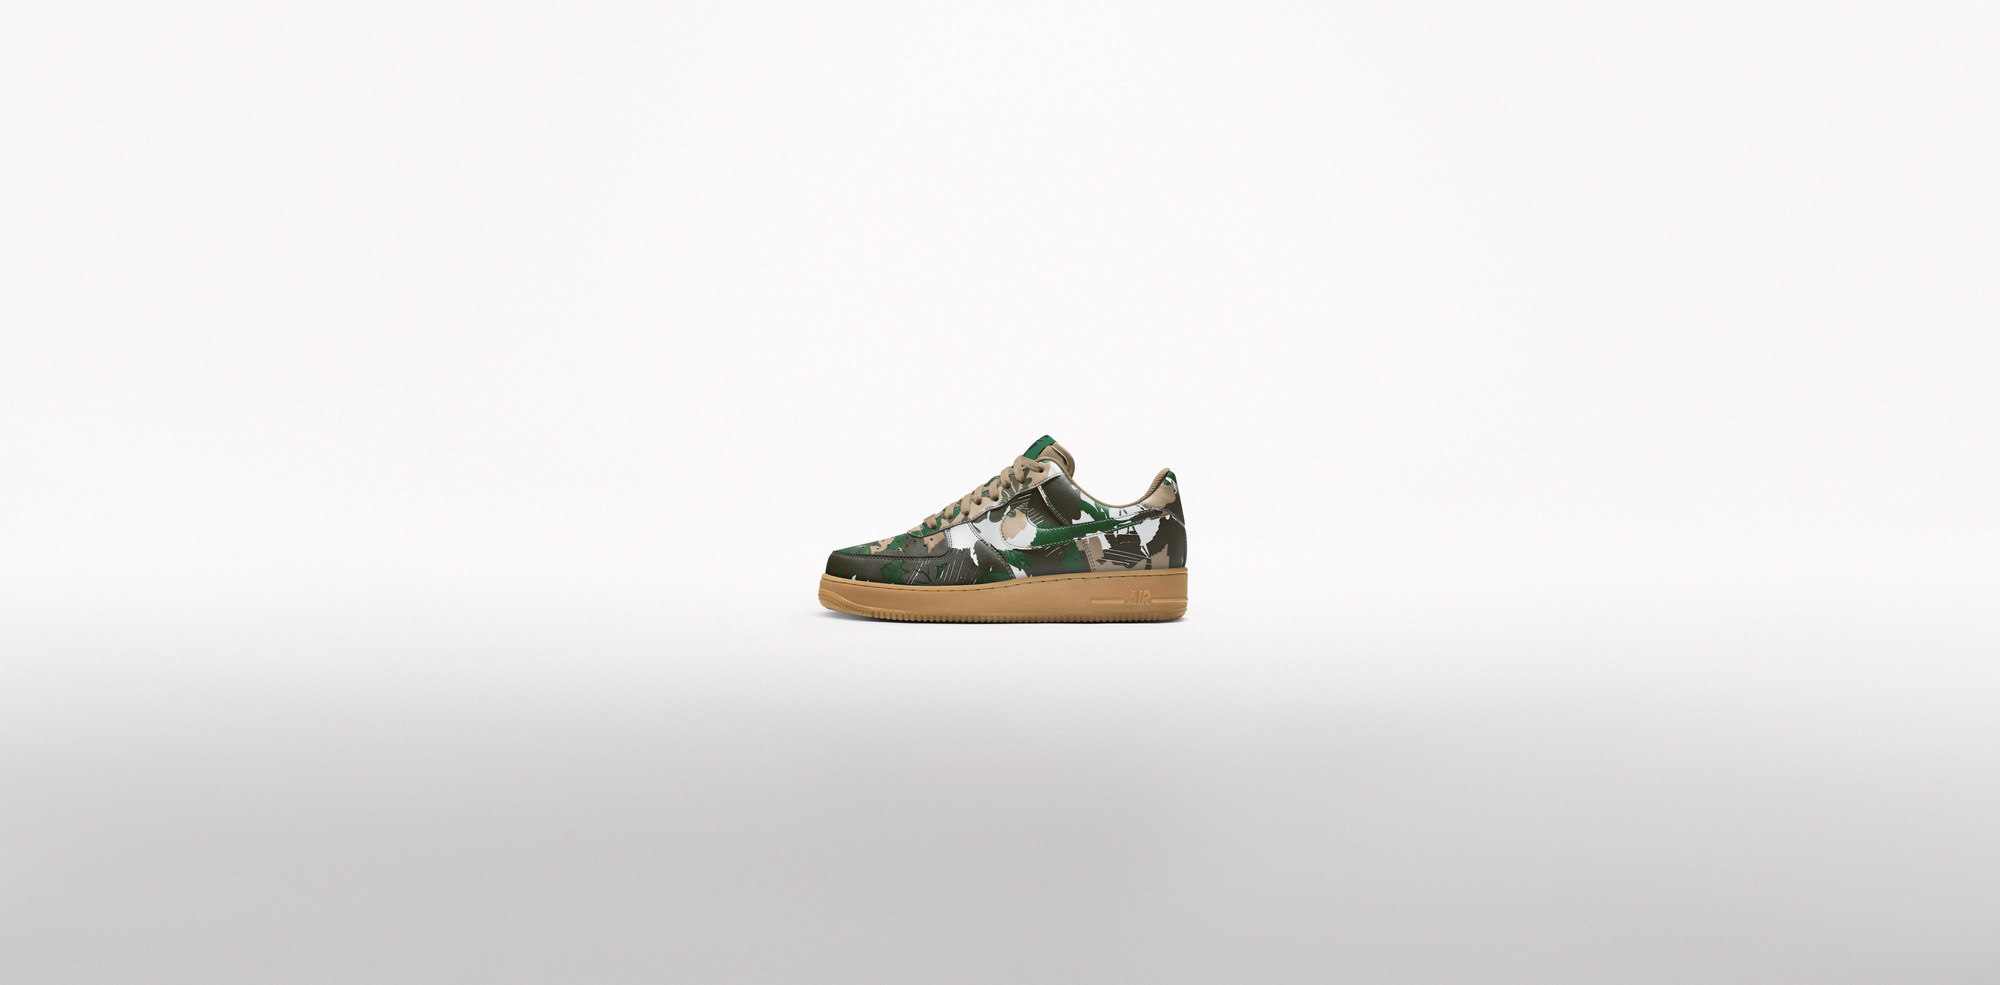 Nike Air Force 1 iD Camo 7